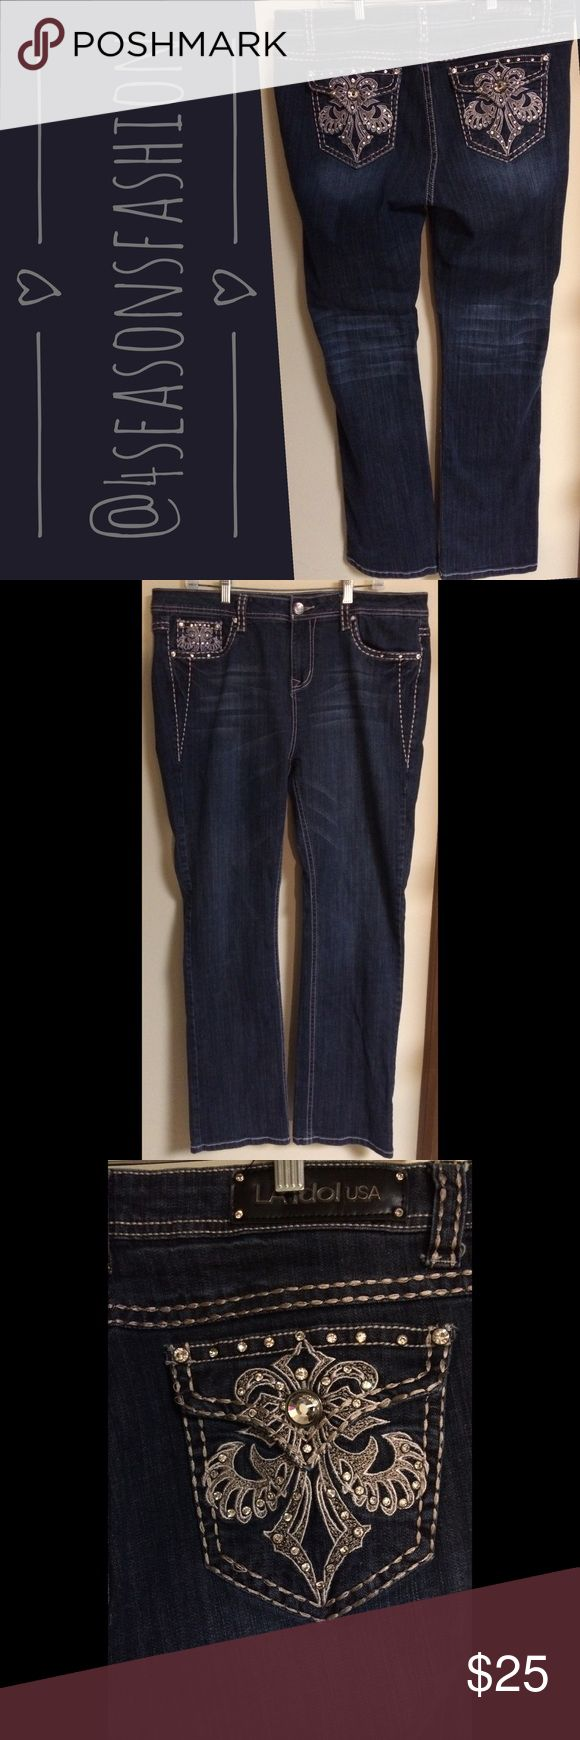 💥BRAND NEW LISTING💥 NWOT LA IDOL DARK WASH JUNIORS JEANS SZ 19. These stretch and have bling on the back pockets. LA IDOL Jeans